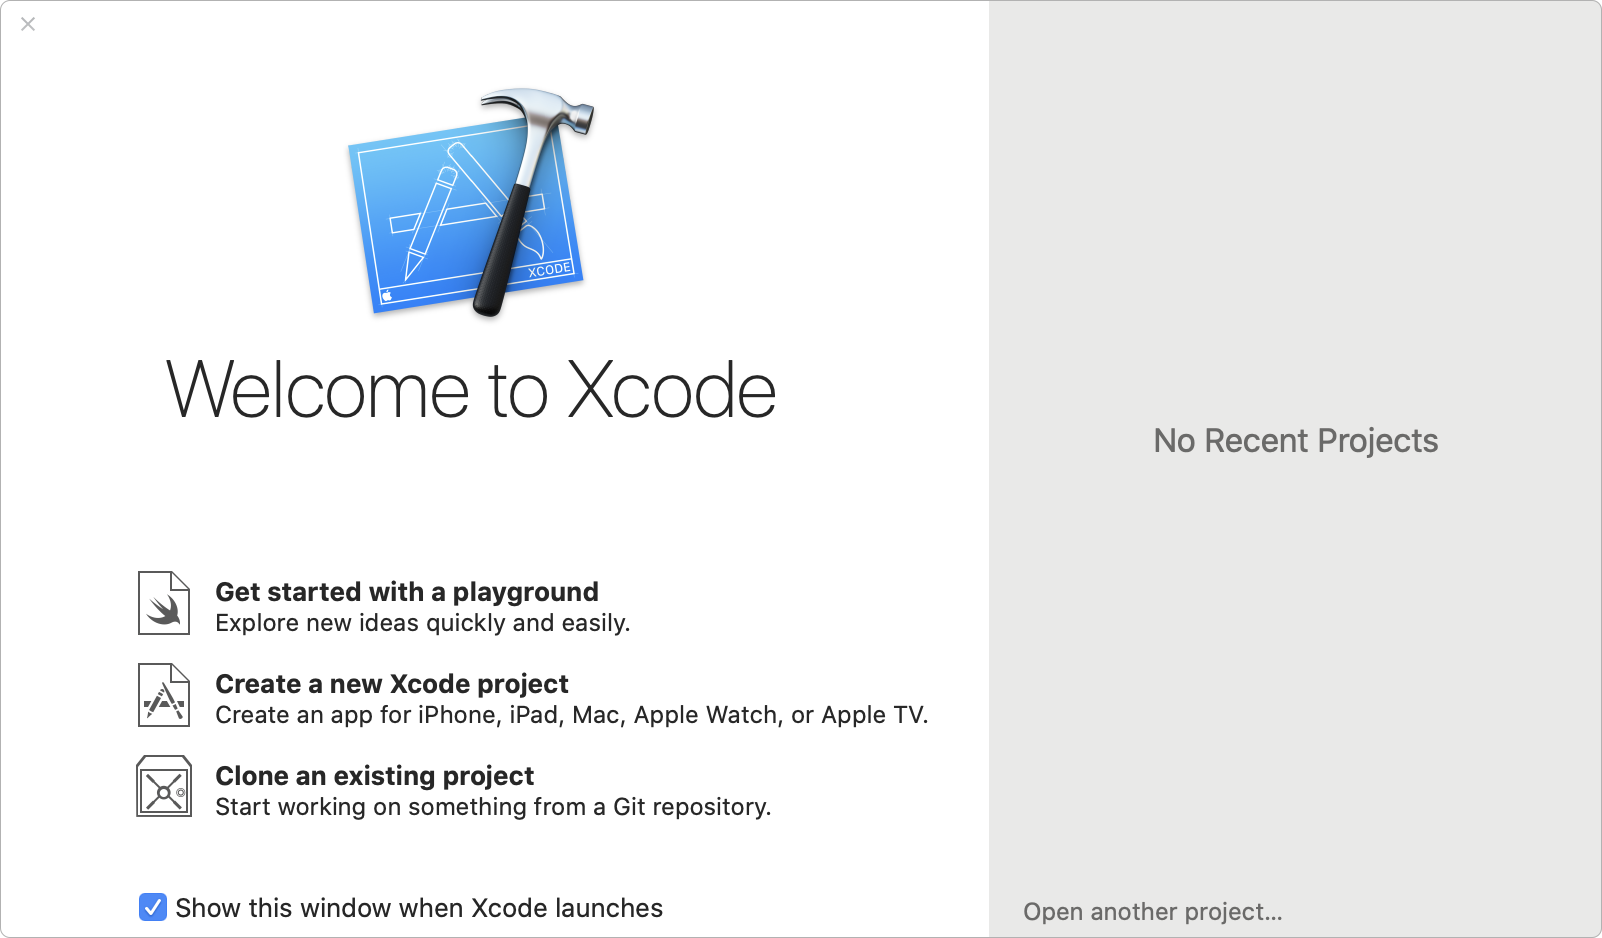 The Xcode splash screen highlighting features such as get started with a playground, create a new Xcode project, and clone an existing project.